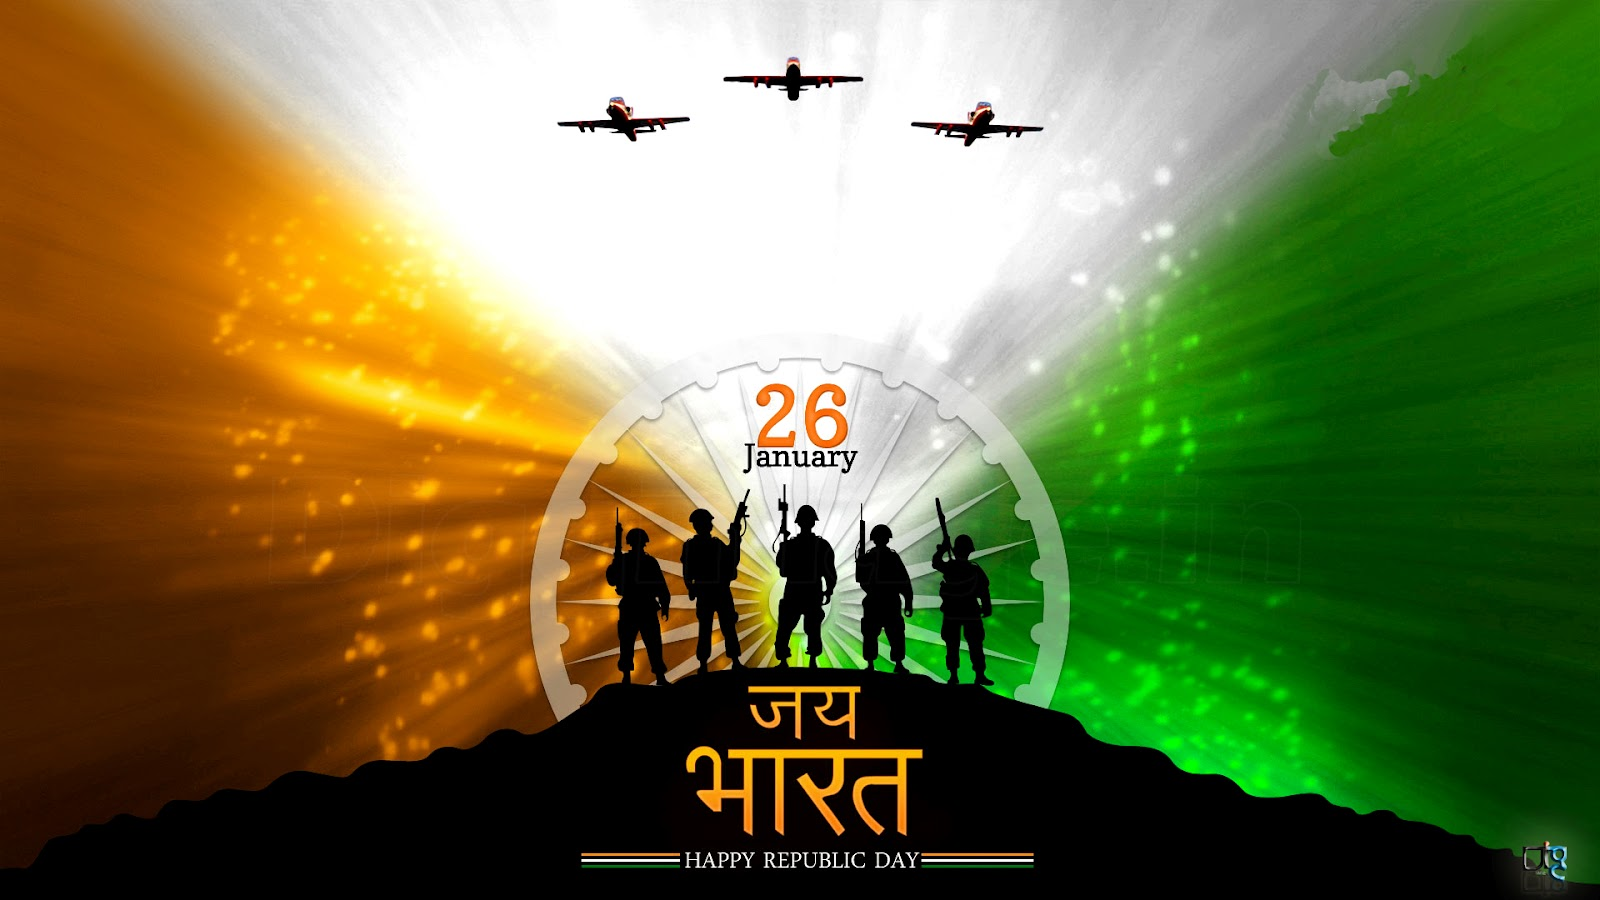 http://1.bp.blogspot.com/-WShNdOyJ4tI/UQM6Mfy6xUI/AAAAAAAAGrE/6w4aPgWRQUY/s1600/January-26-th-happy-republic-day-2013-jai-bharat-indian-greetings-wallpapers.JPG